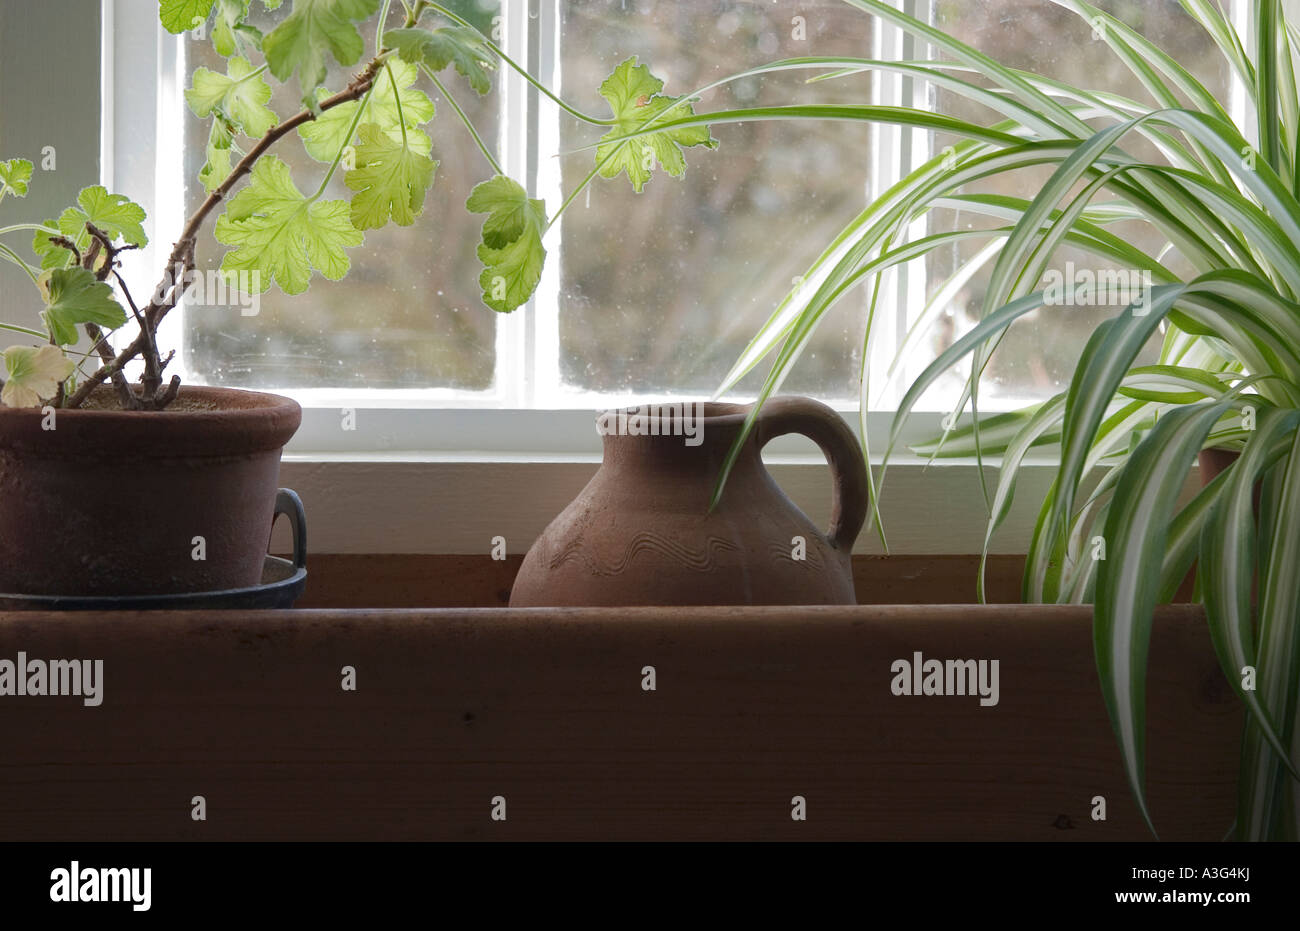 View of indoor plants on a window ledge - Stock Image